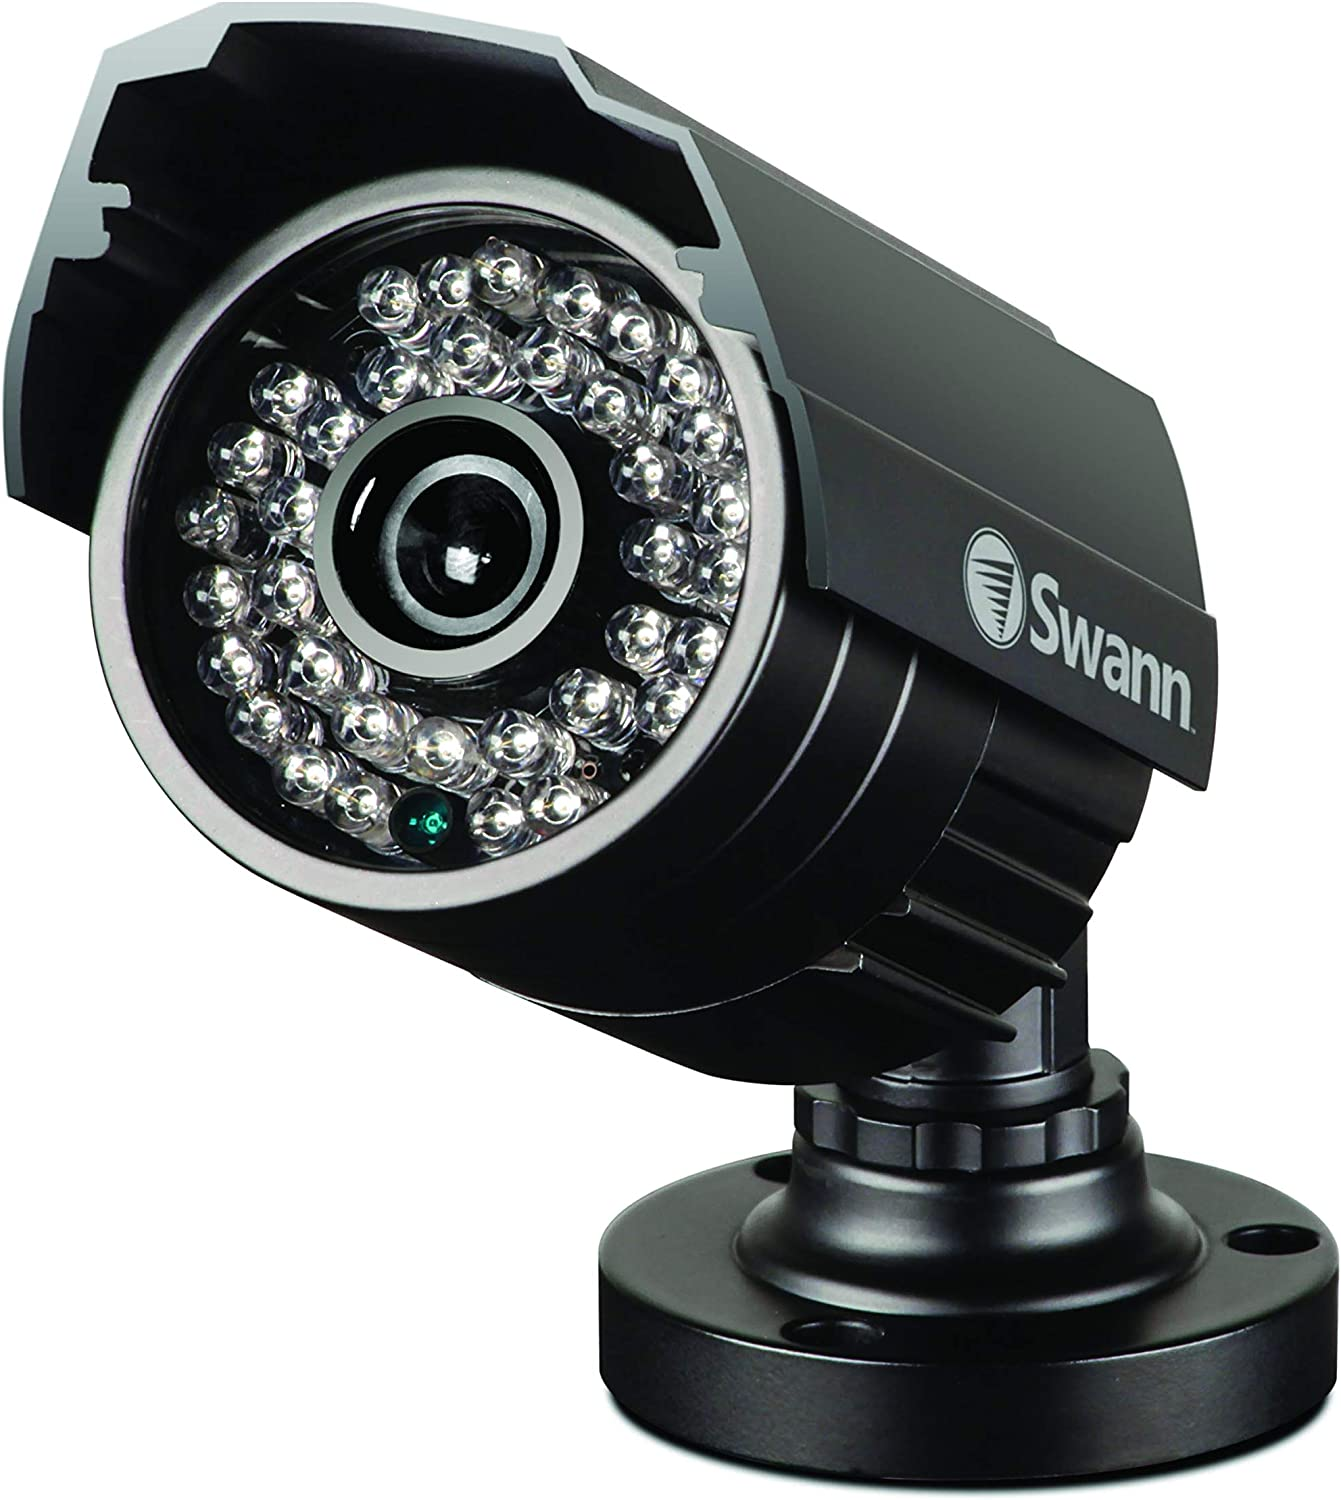 Swann PRO-815-1080p Full HD Day - Vi Ultra-Cheap Deals Night Camera Over item handling Security